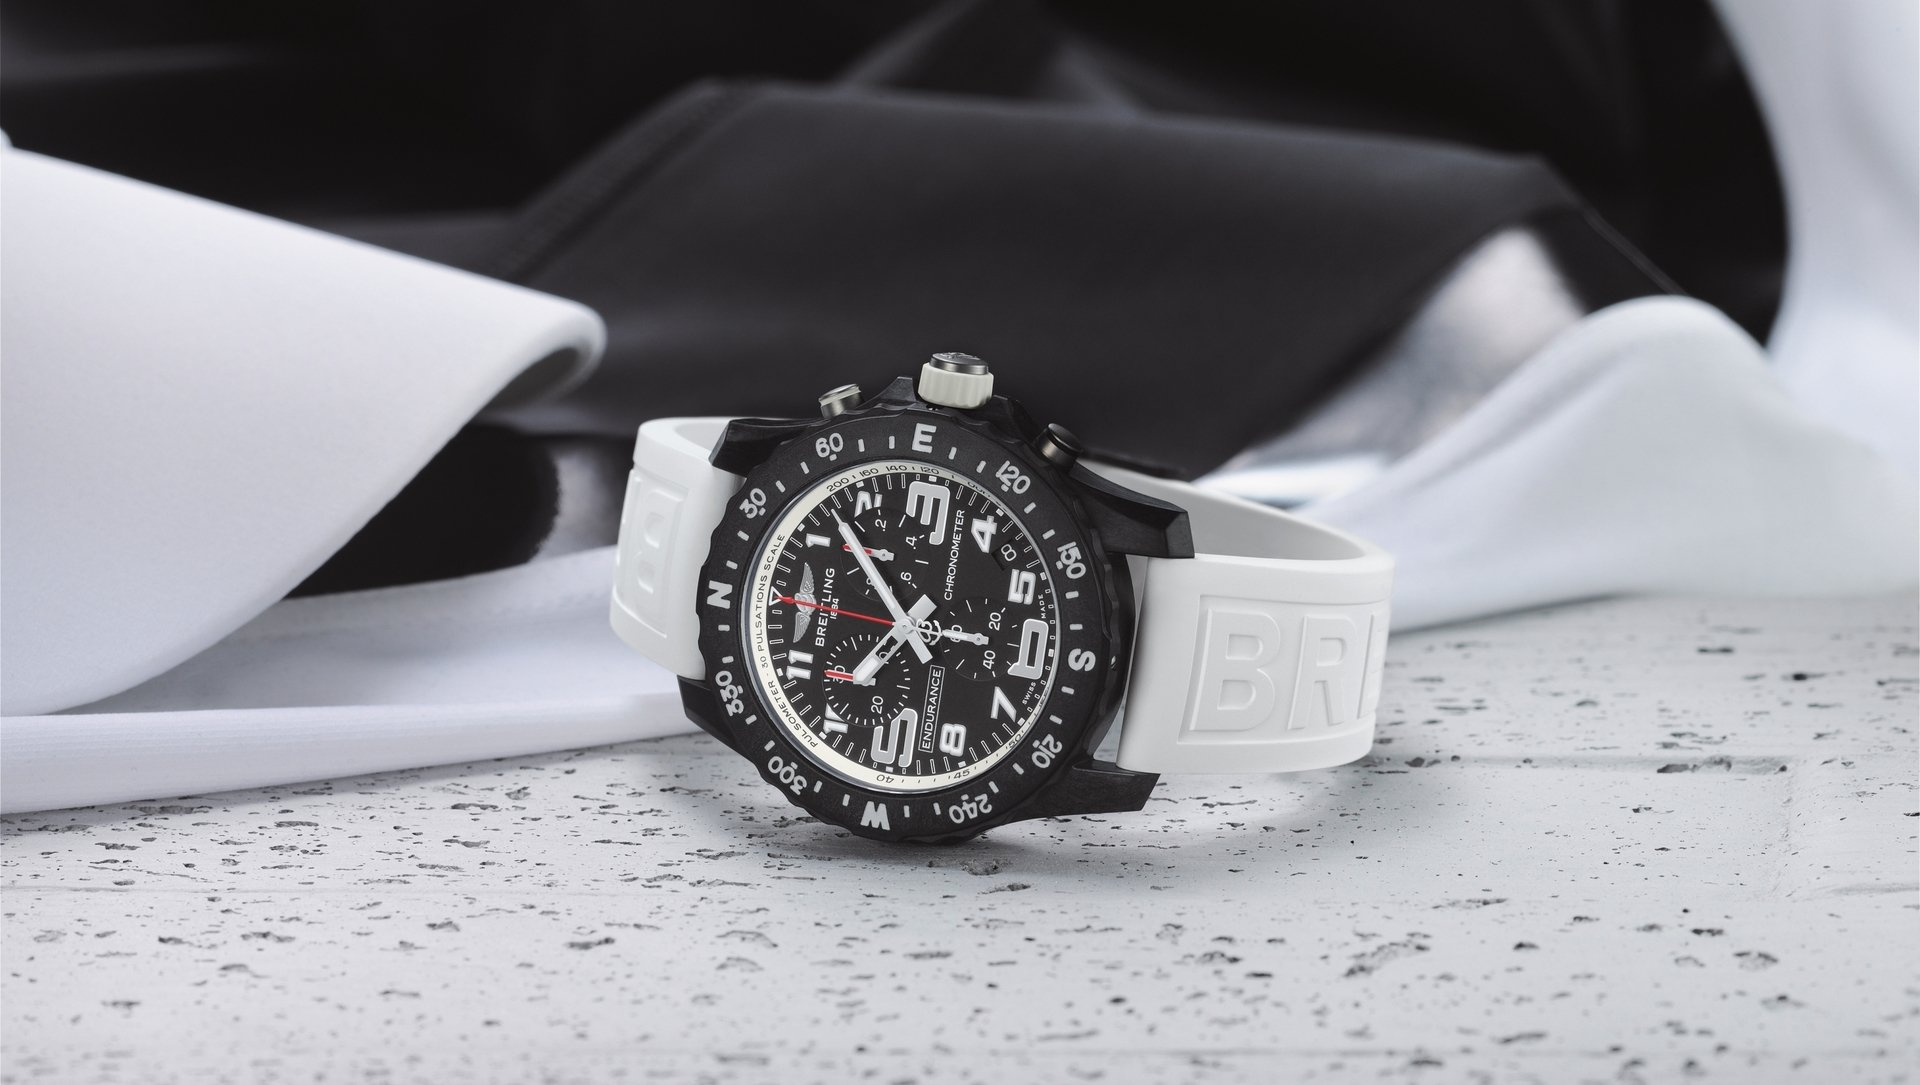 10_endurance-pro-with-a-white-inner-bezel-and-rubber-strap.jpg